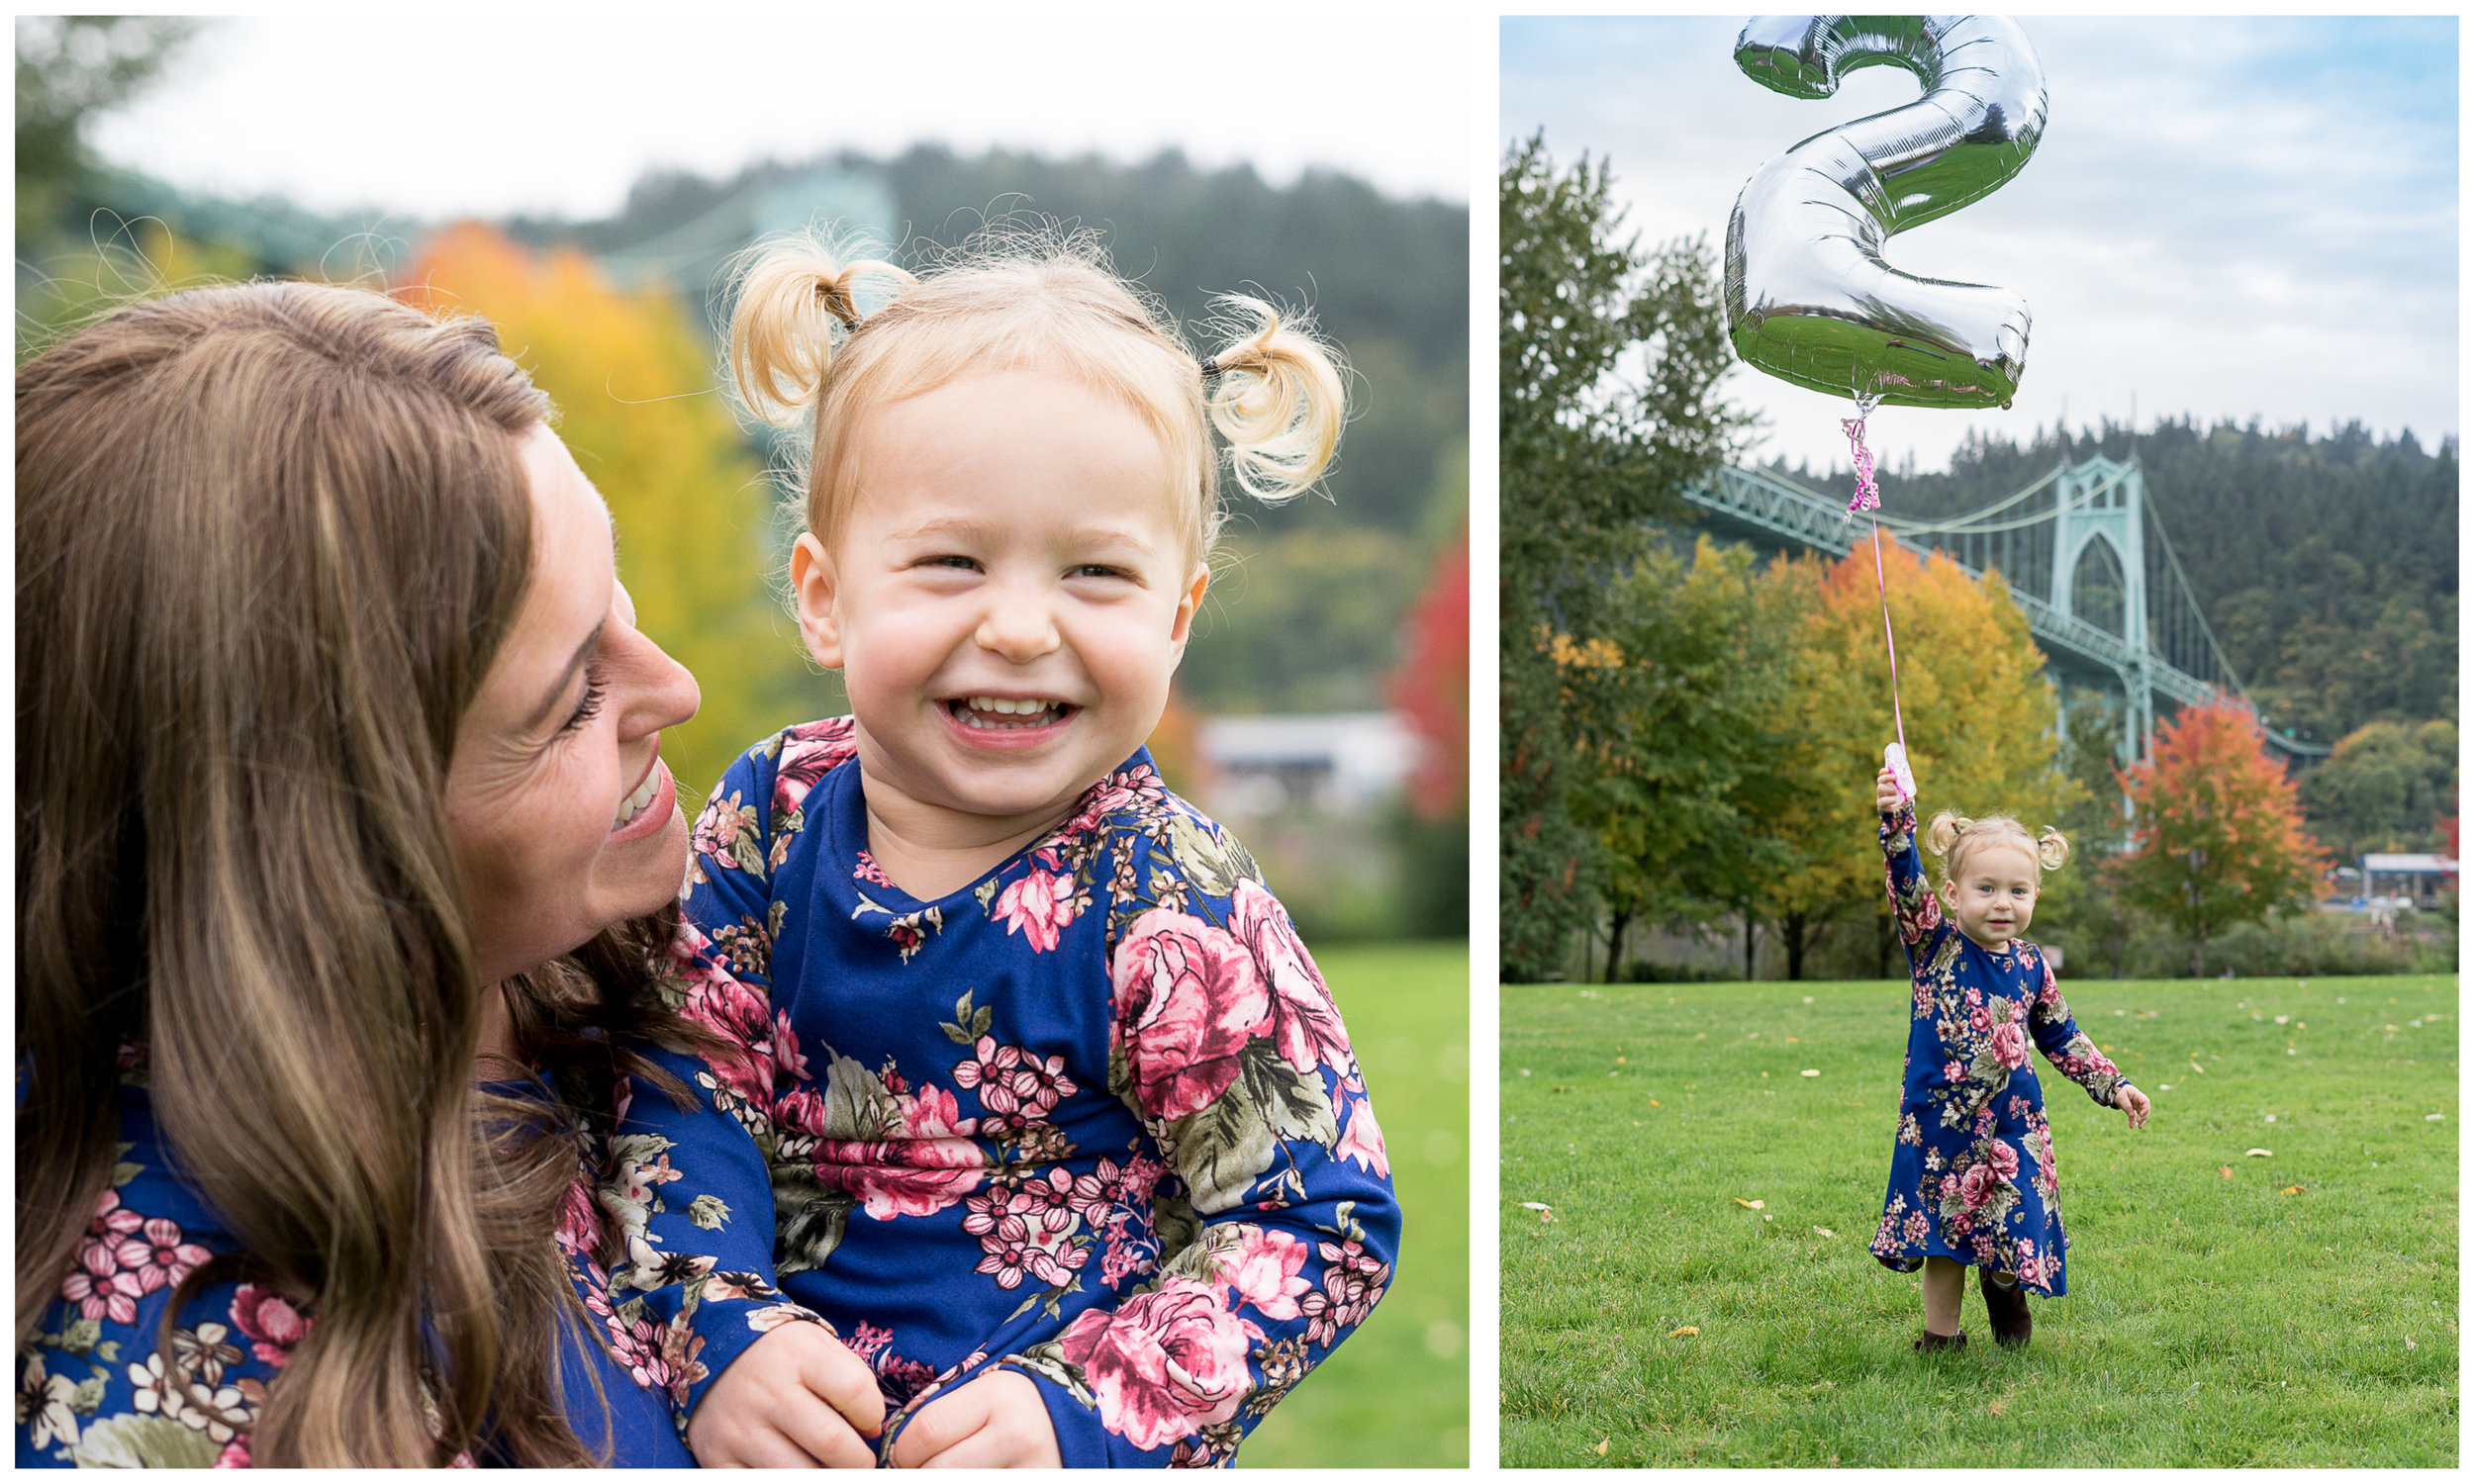 Mommy daughter dresses, a number balloon, and beautiful scenery made for an awesome photo shoot a couple weeks back. Miss Viana turned 2 recently and was such a fun model to photograph! We started out at Cathedral Park and then headed to an awesome overlook in Forest Heights where Megan, Ben, and Viana call home. Thank you so much for letting me document your family, I hope you enjoy your photos!